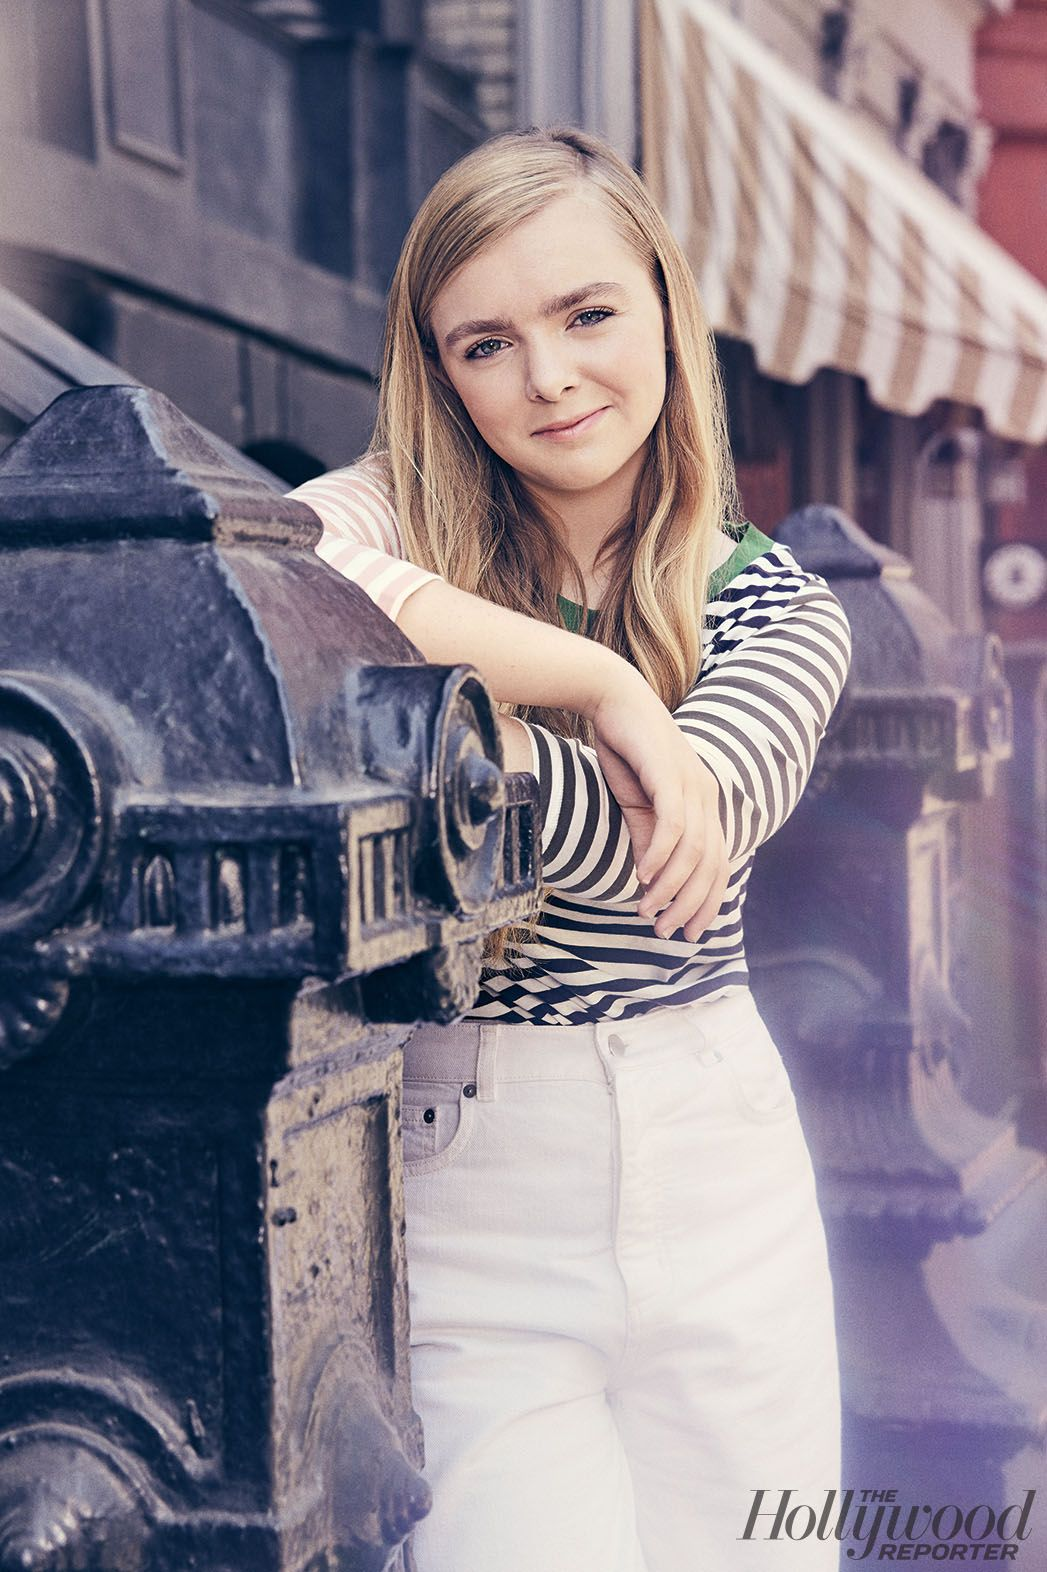 Eighth Grade Star Elsie Fisher Joins Animated Addams Family